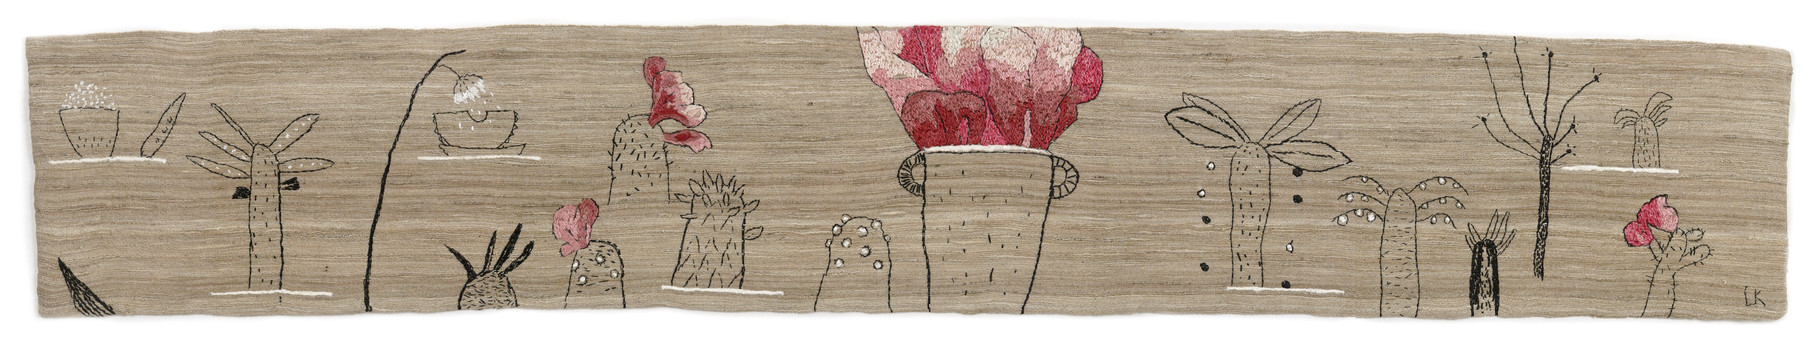 The forest / embroidery, raw silk, 15x65cm, 1999